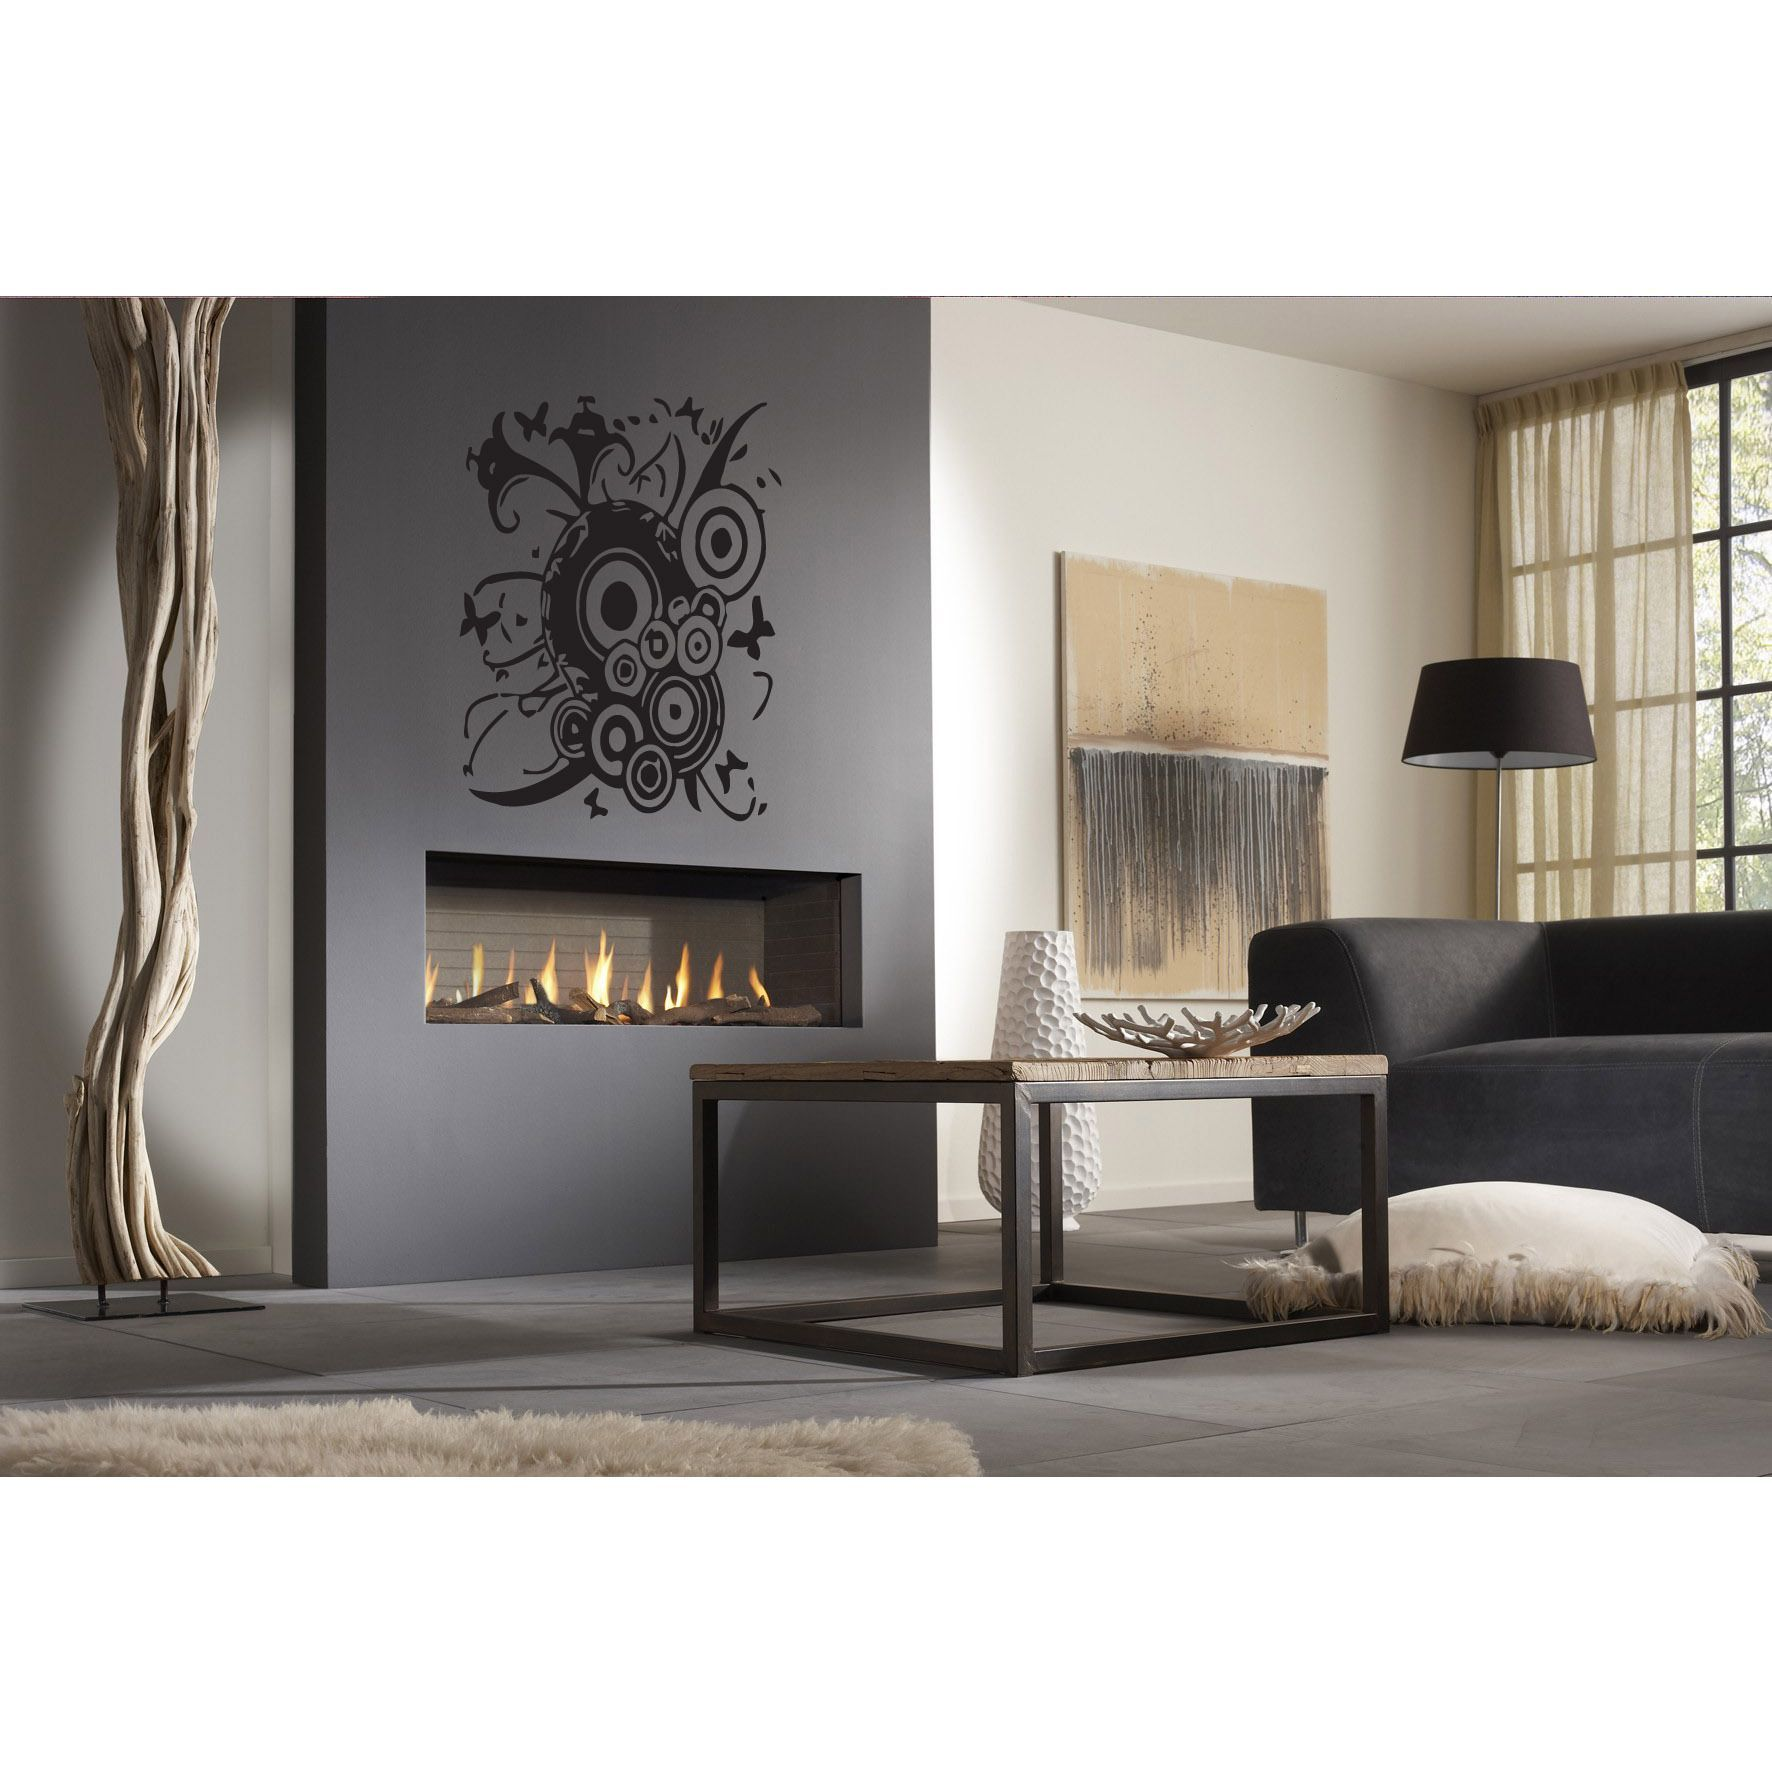 Fireplace Decal Abstract Butterflies Wall Art Sticker Decal